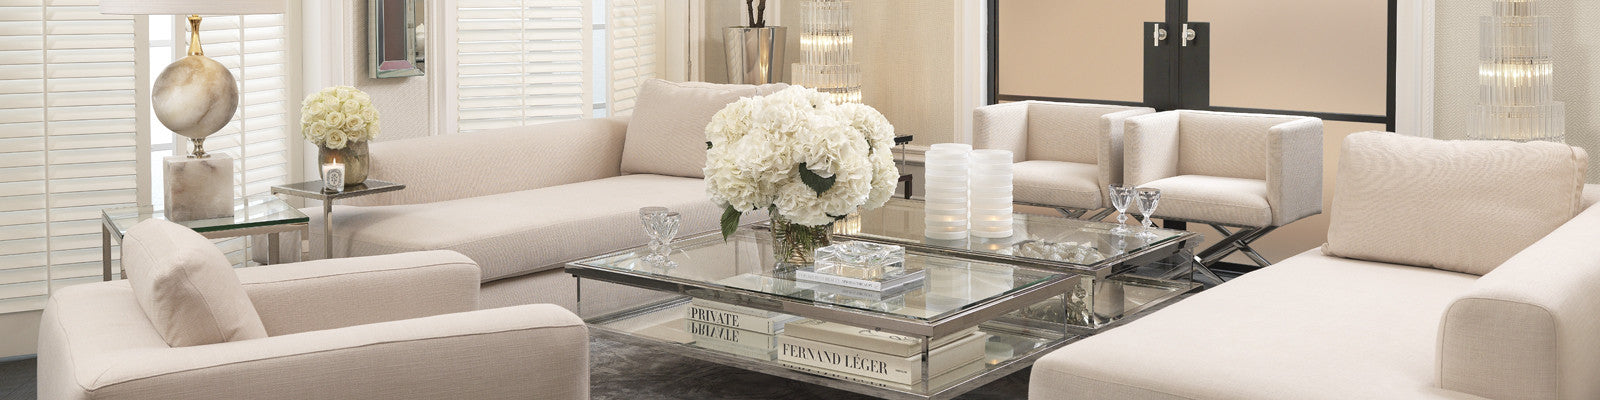 Living room Furniture | Eichholtz | OROA - Modern & Luxury Furniture Online